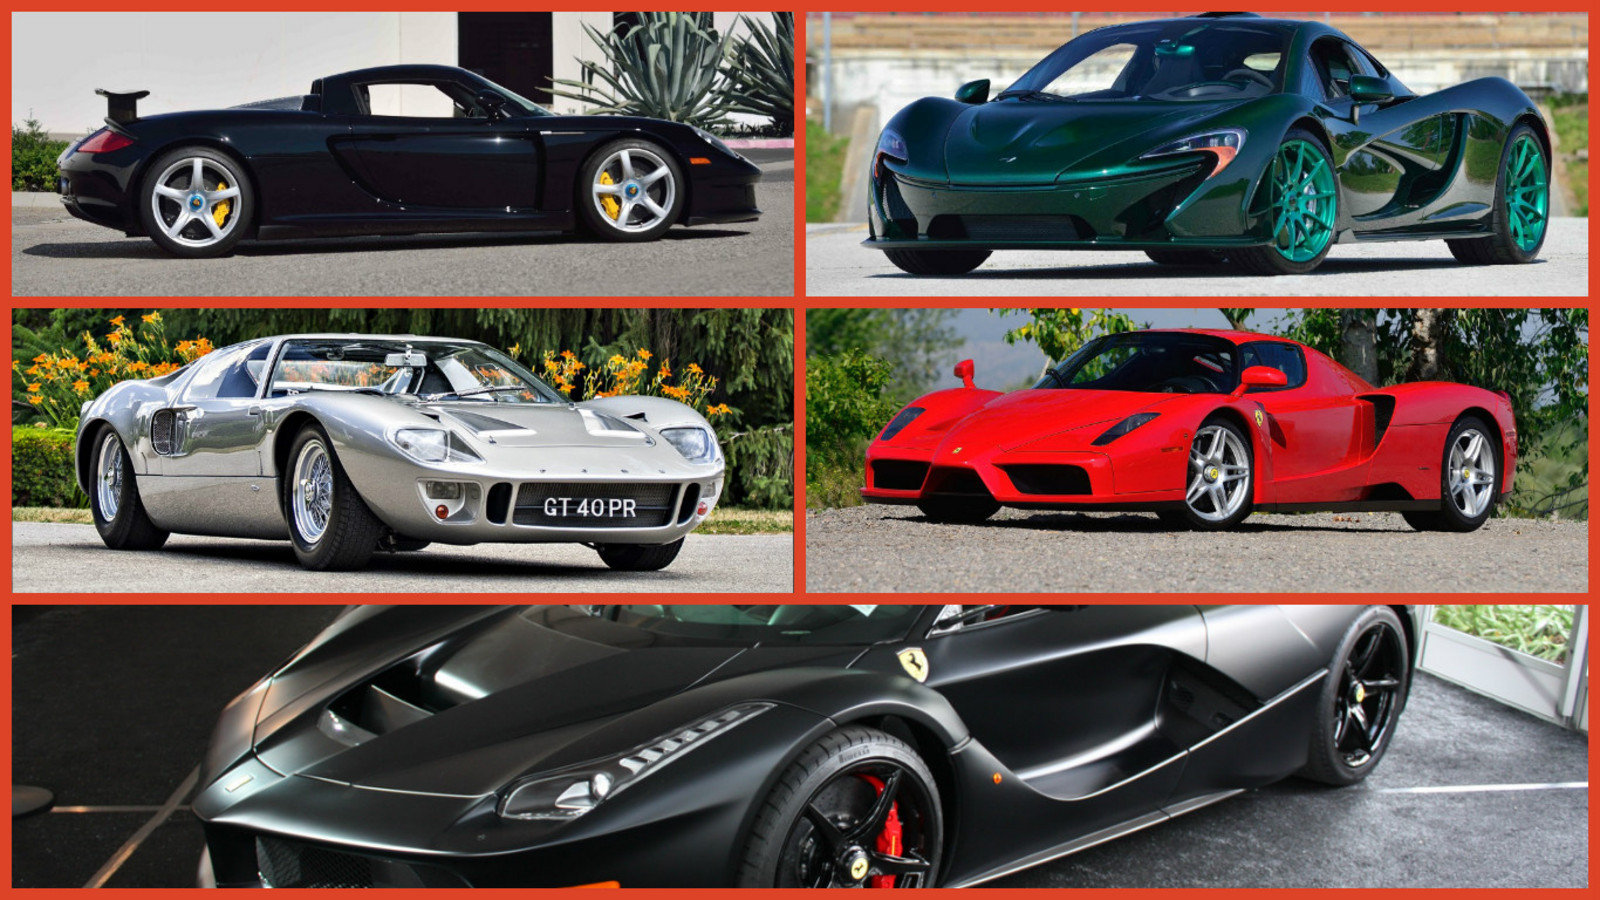 Top 10 Cars At Mecum S Monterey Auction Pull In Nearly 20